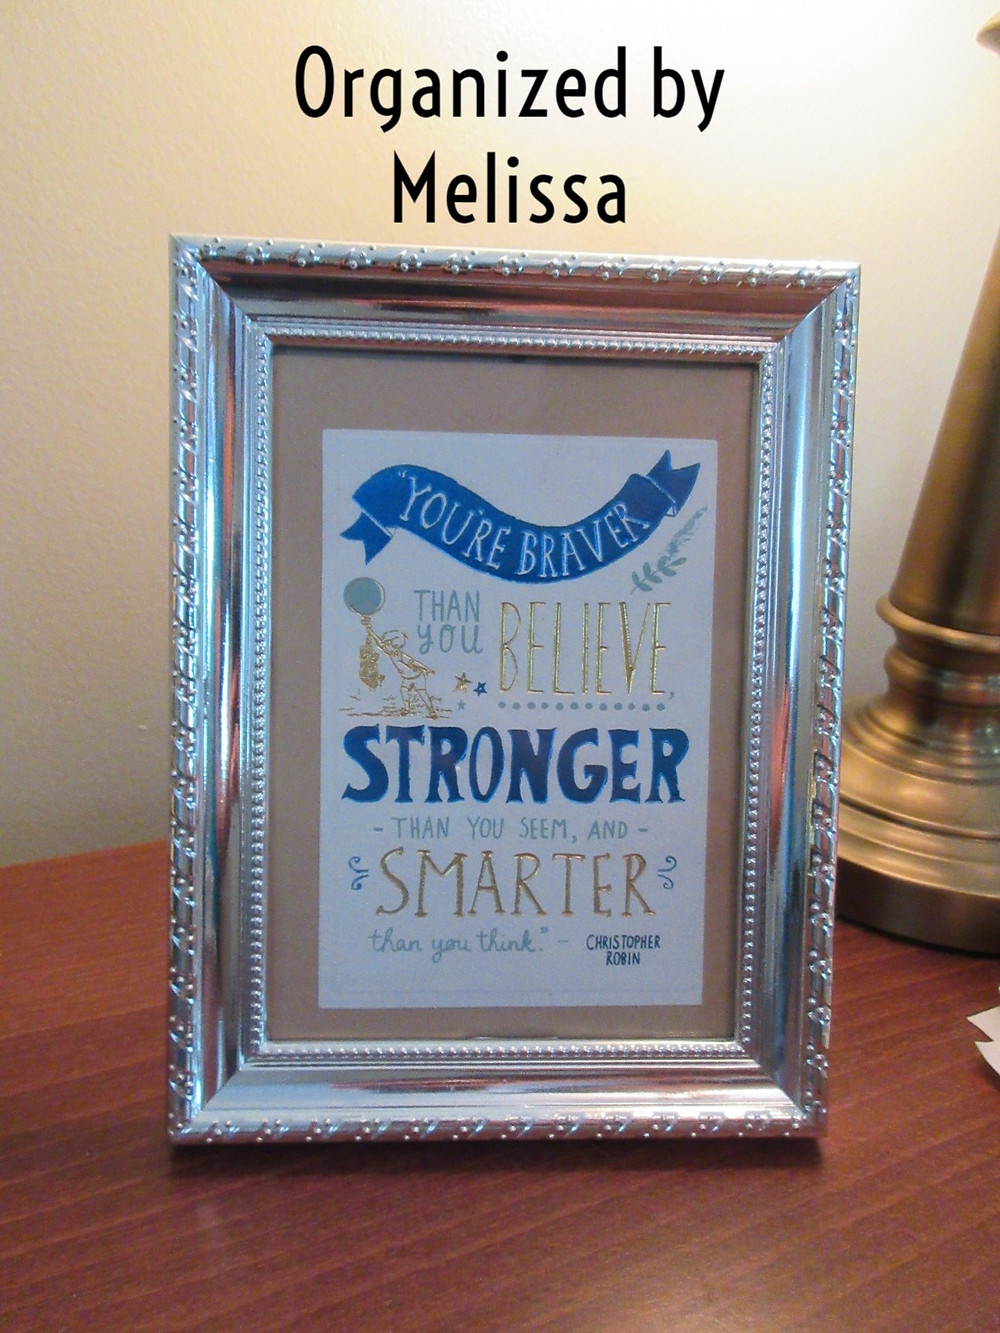 A home office Organized by Melissa, the perfect quote from A.A. Milne